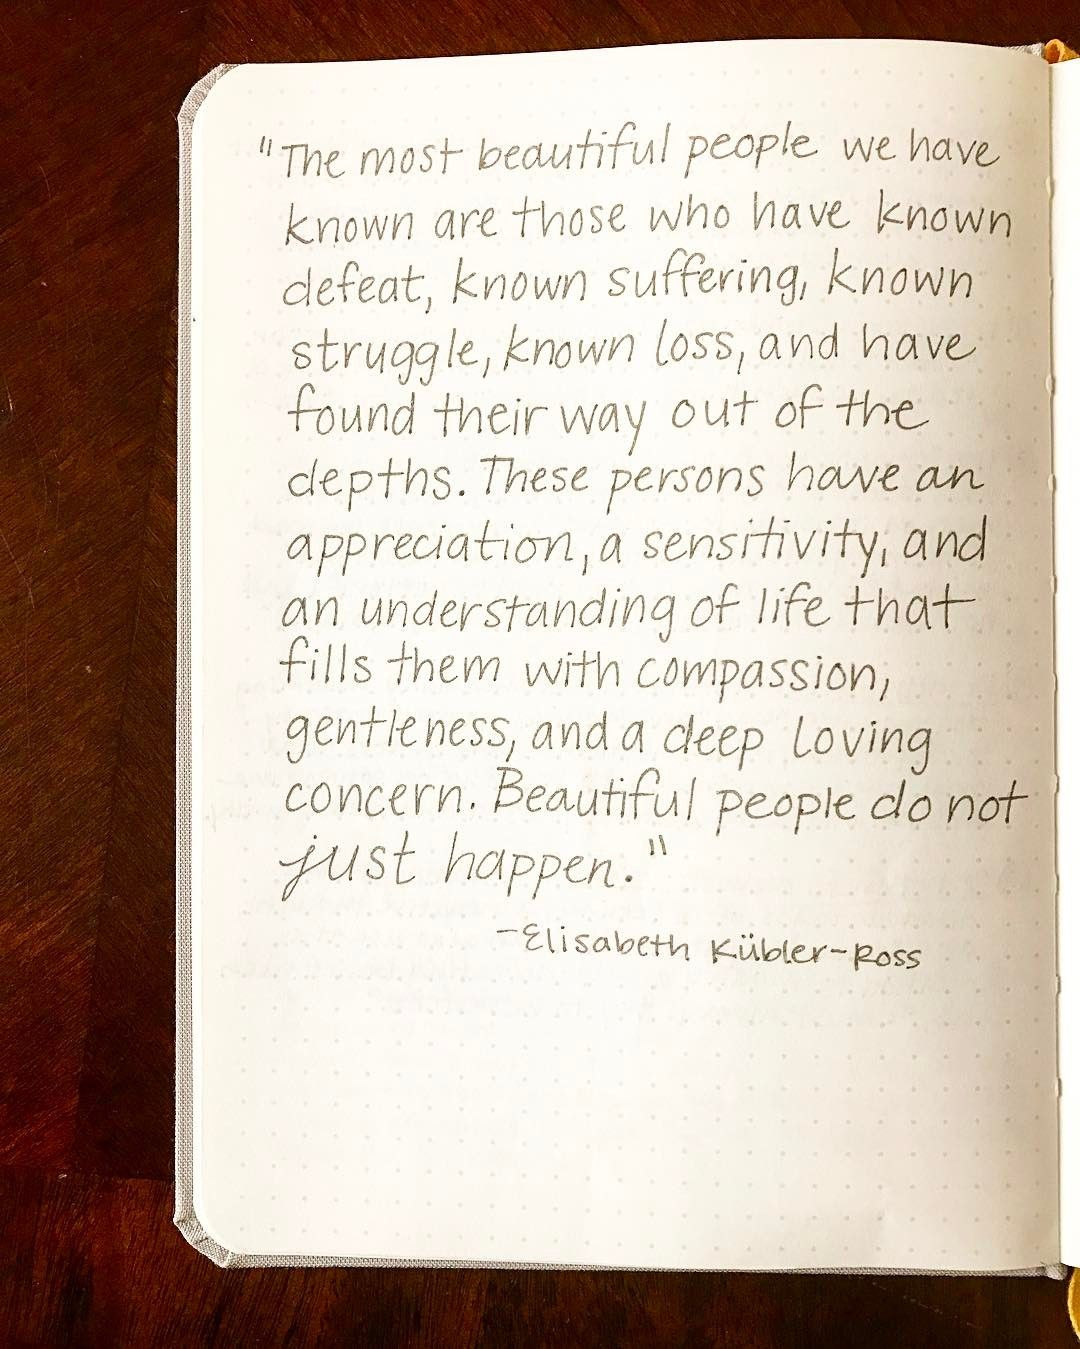 Quotes Journal Beautiful People Do Not Just Happenmentalhealth